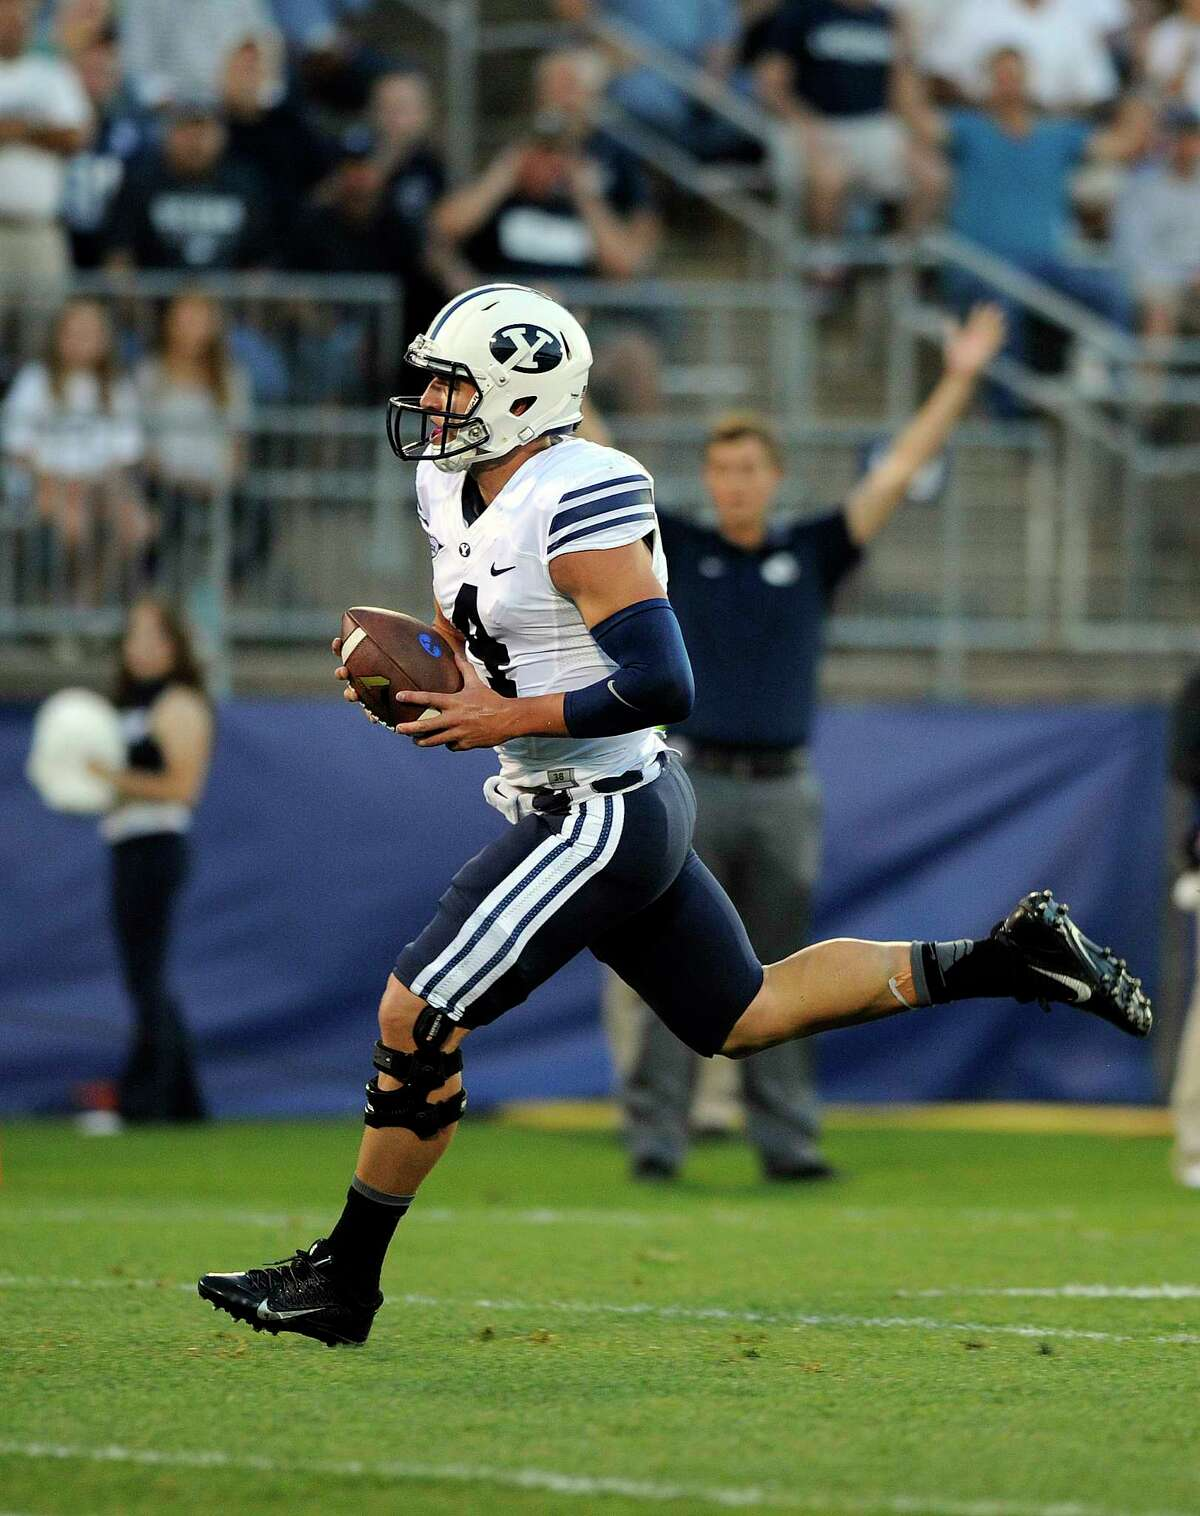 BYU quarterback Taysom Hill (4) runs for a touchdown during the Cougars' 35-10 win over UConn on Friday night at Rentschler Field in East Hartford.